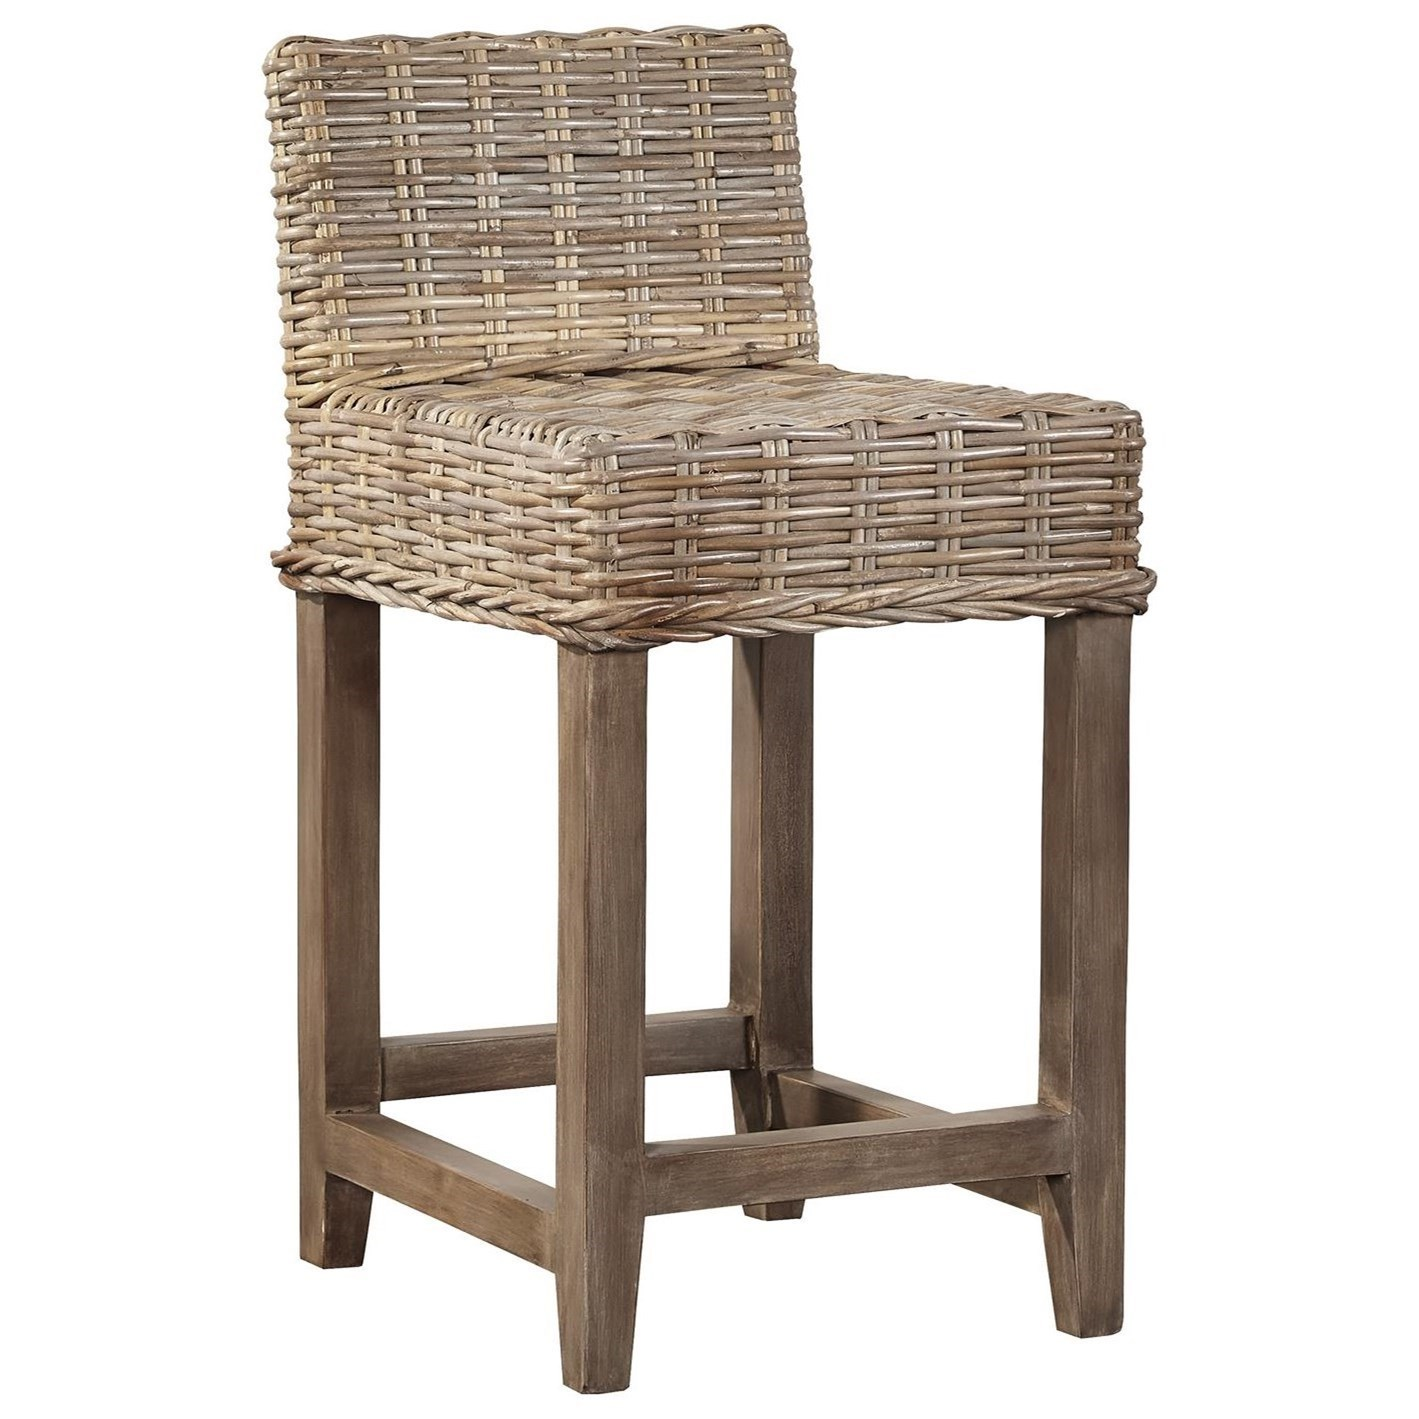 Superieur Furniture Classics Bar And Counter Stools Baxter Counter Stool With Woven  Kubu